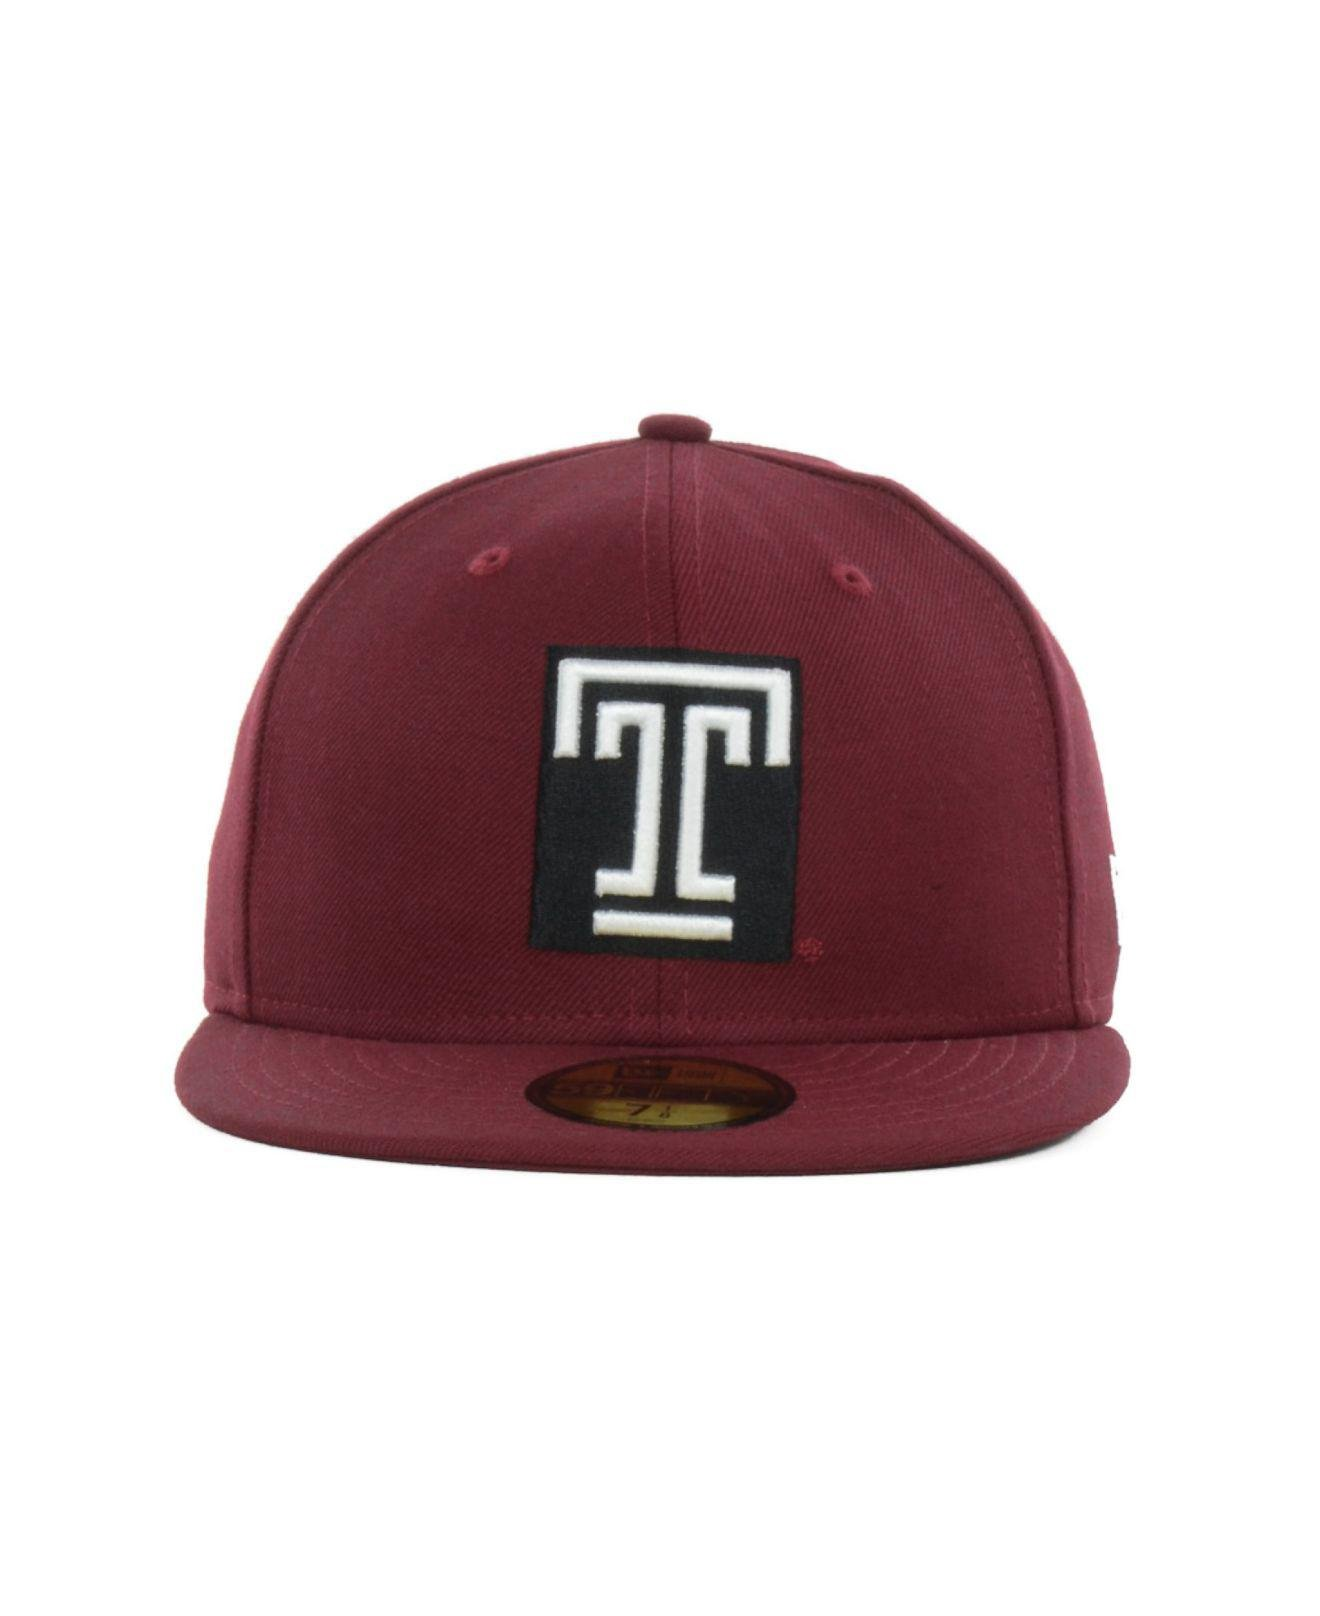 new product 06c07 a85d2 Lyst - KTZ Temple Owls 59fifty Cap in Red for Men